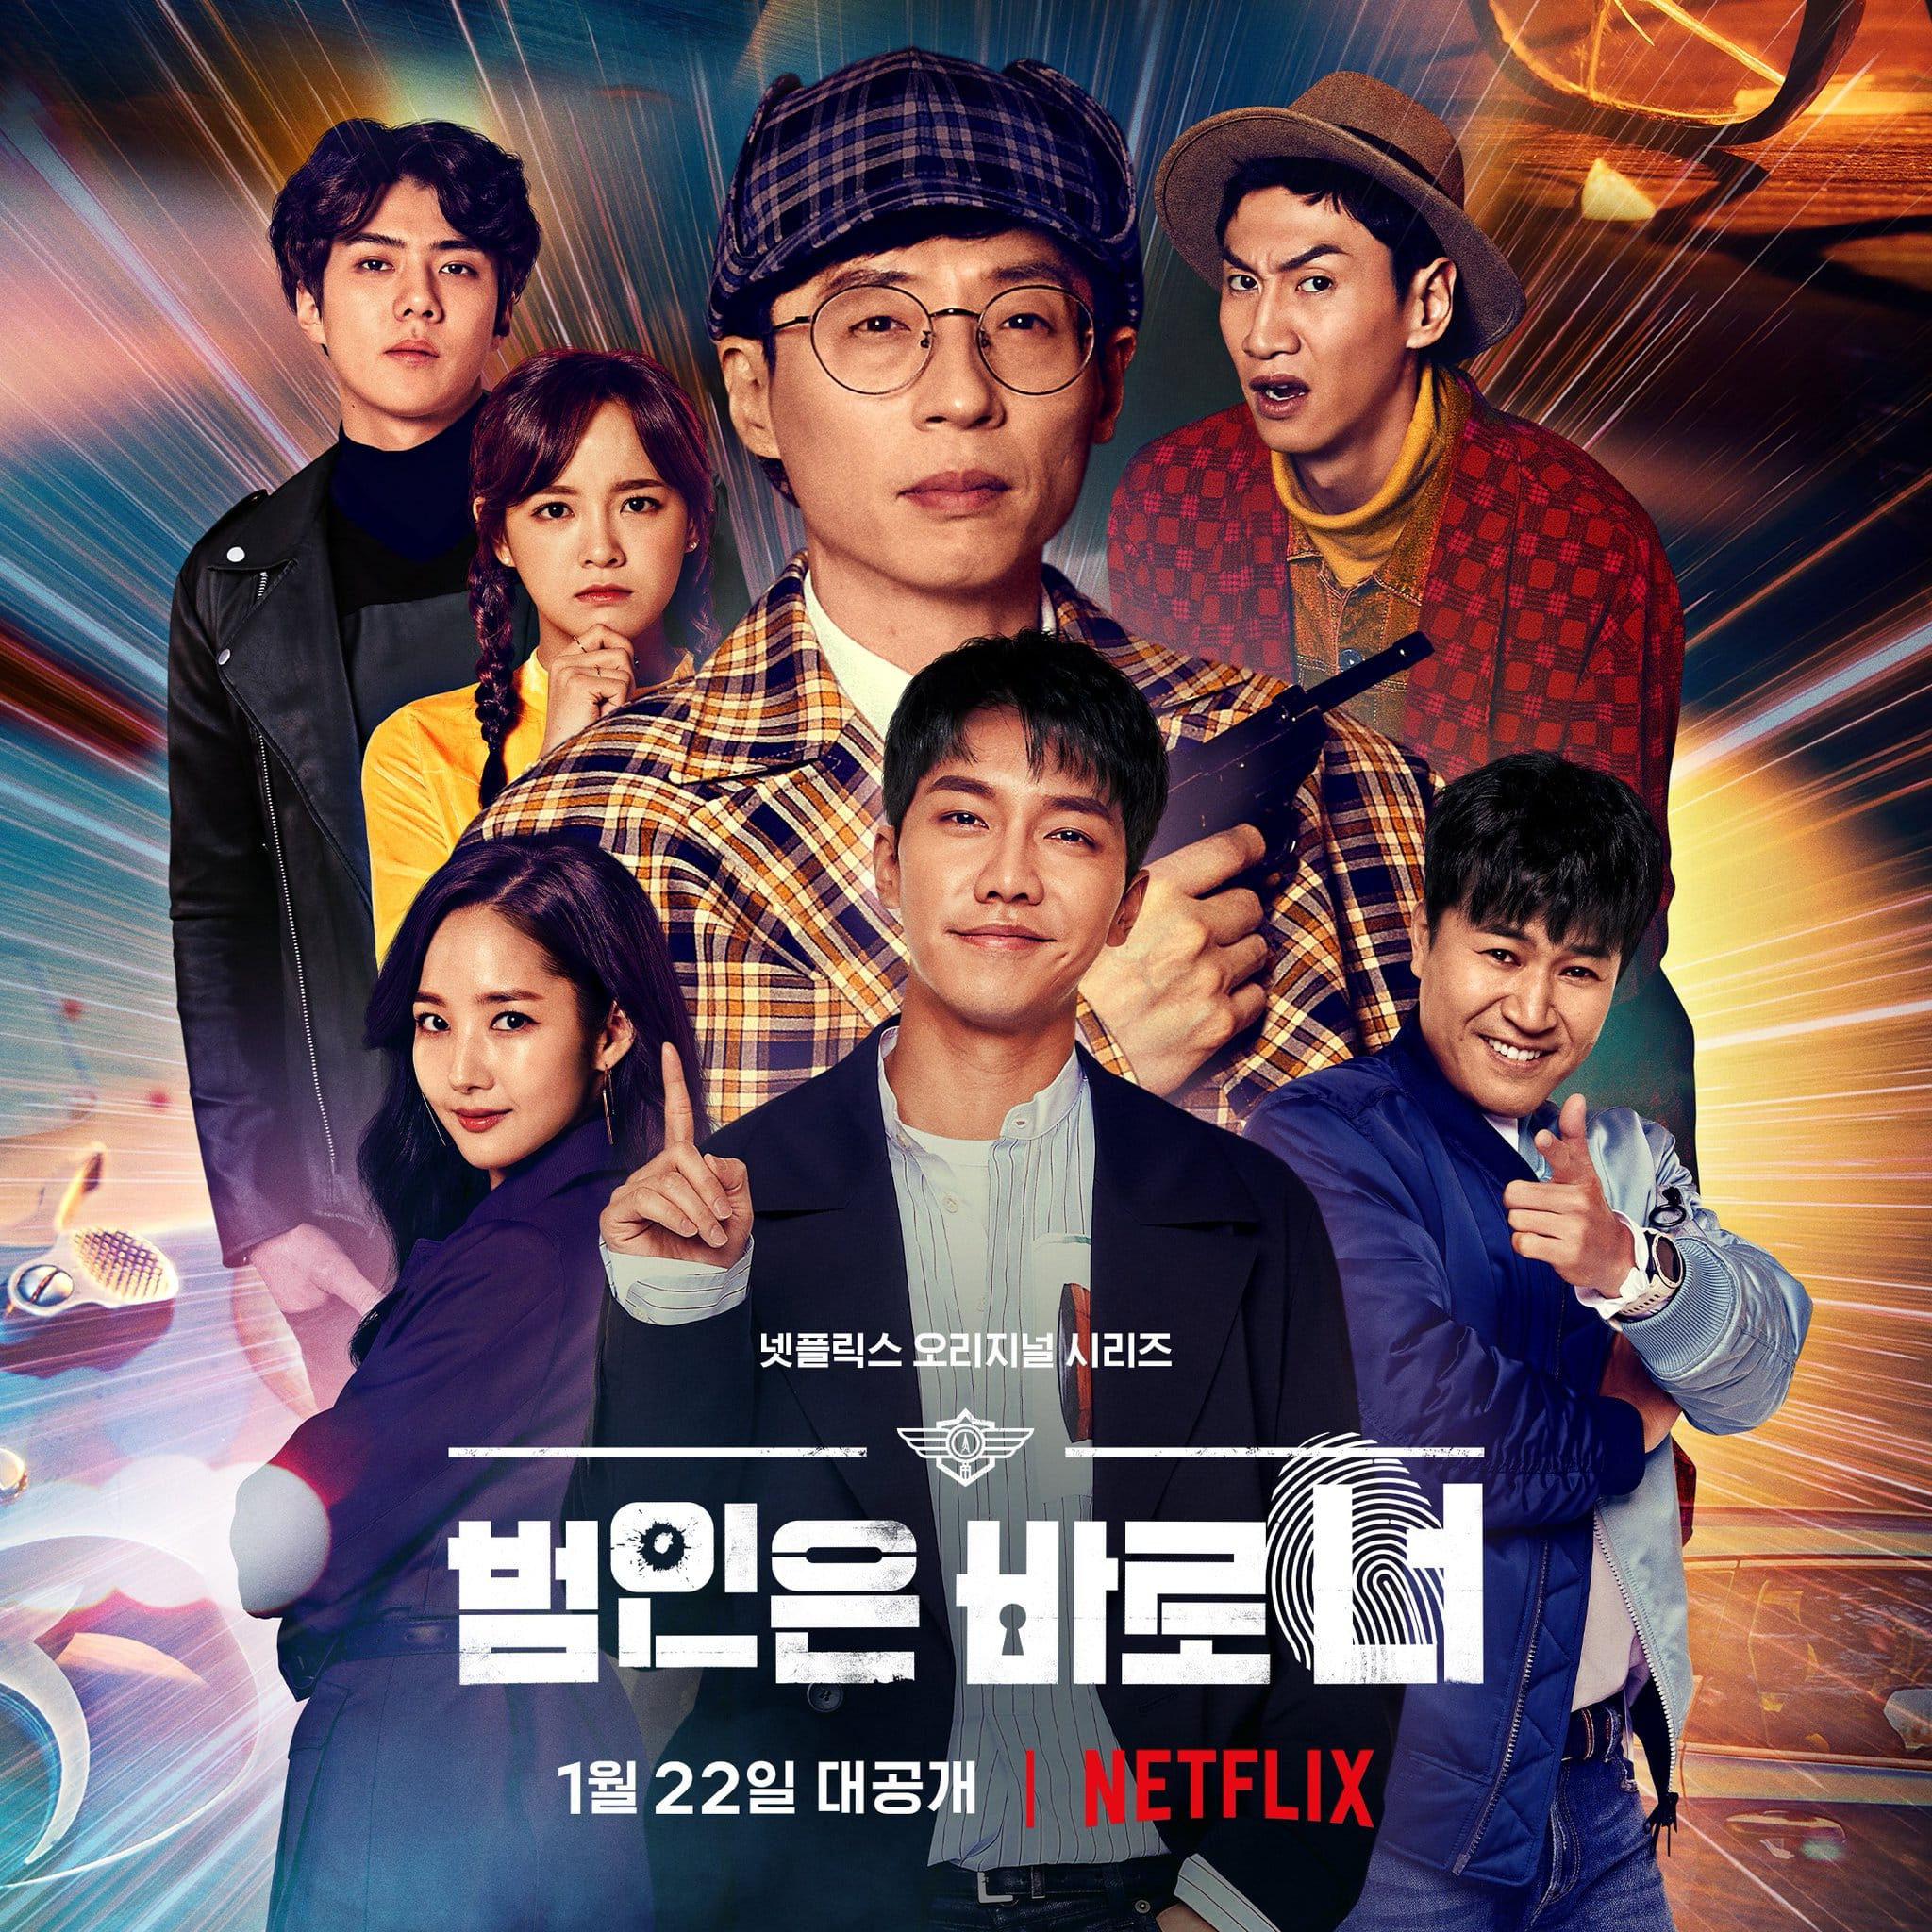 streaming busted season 3